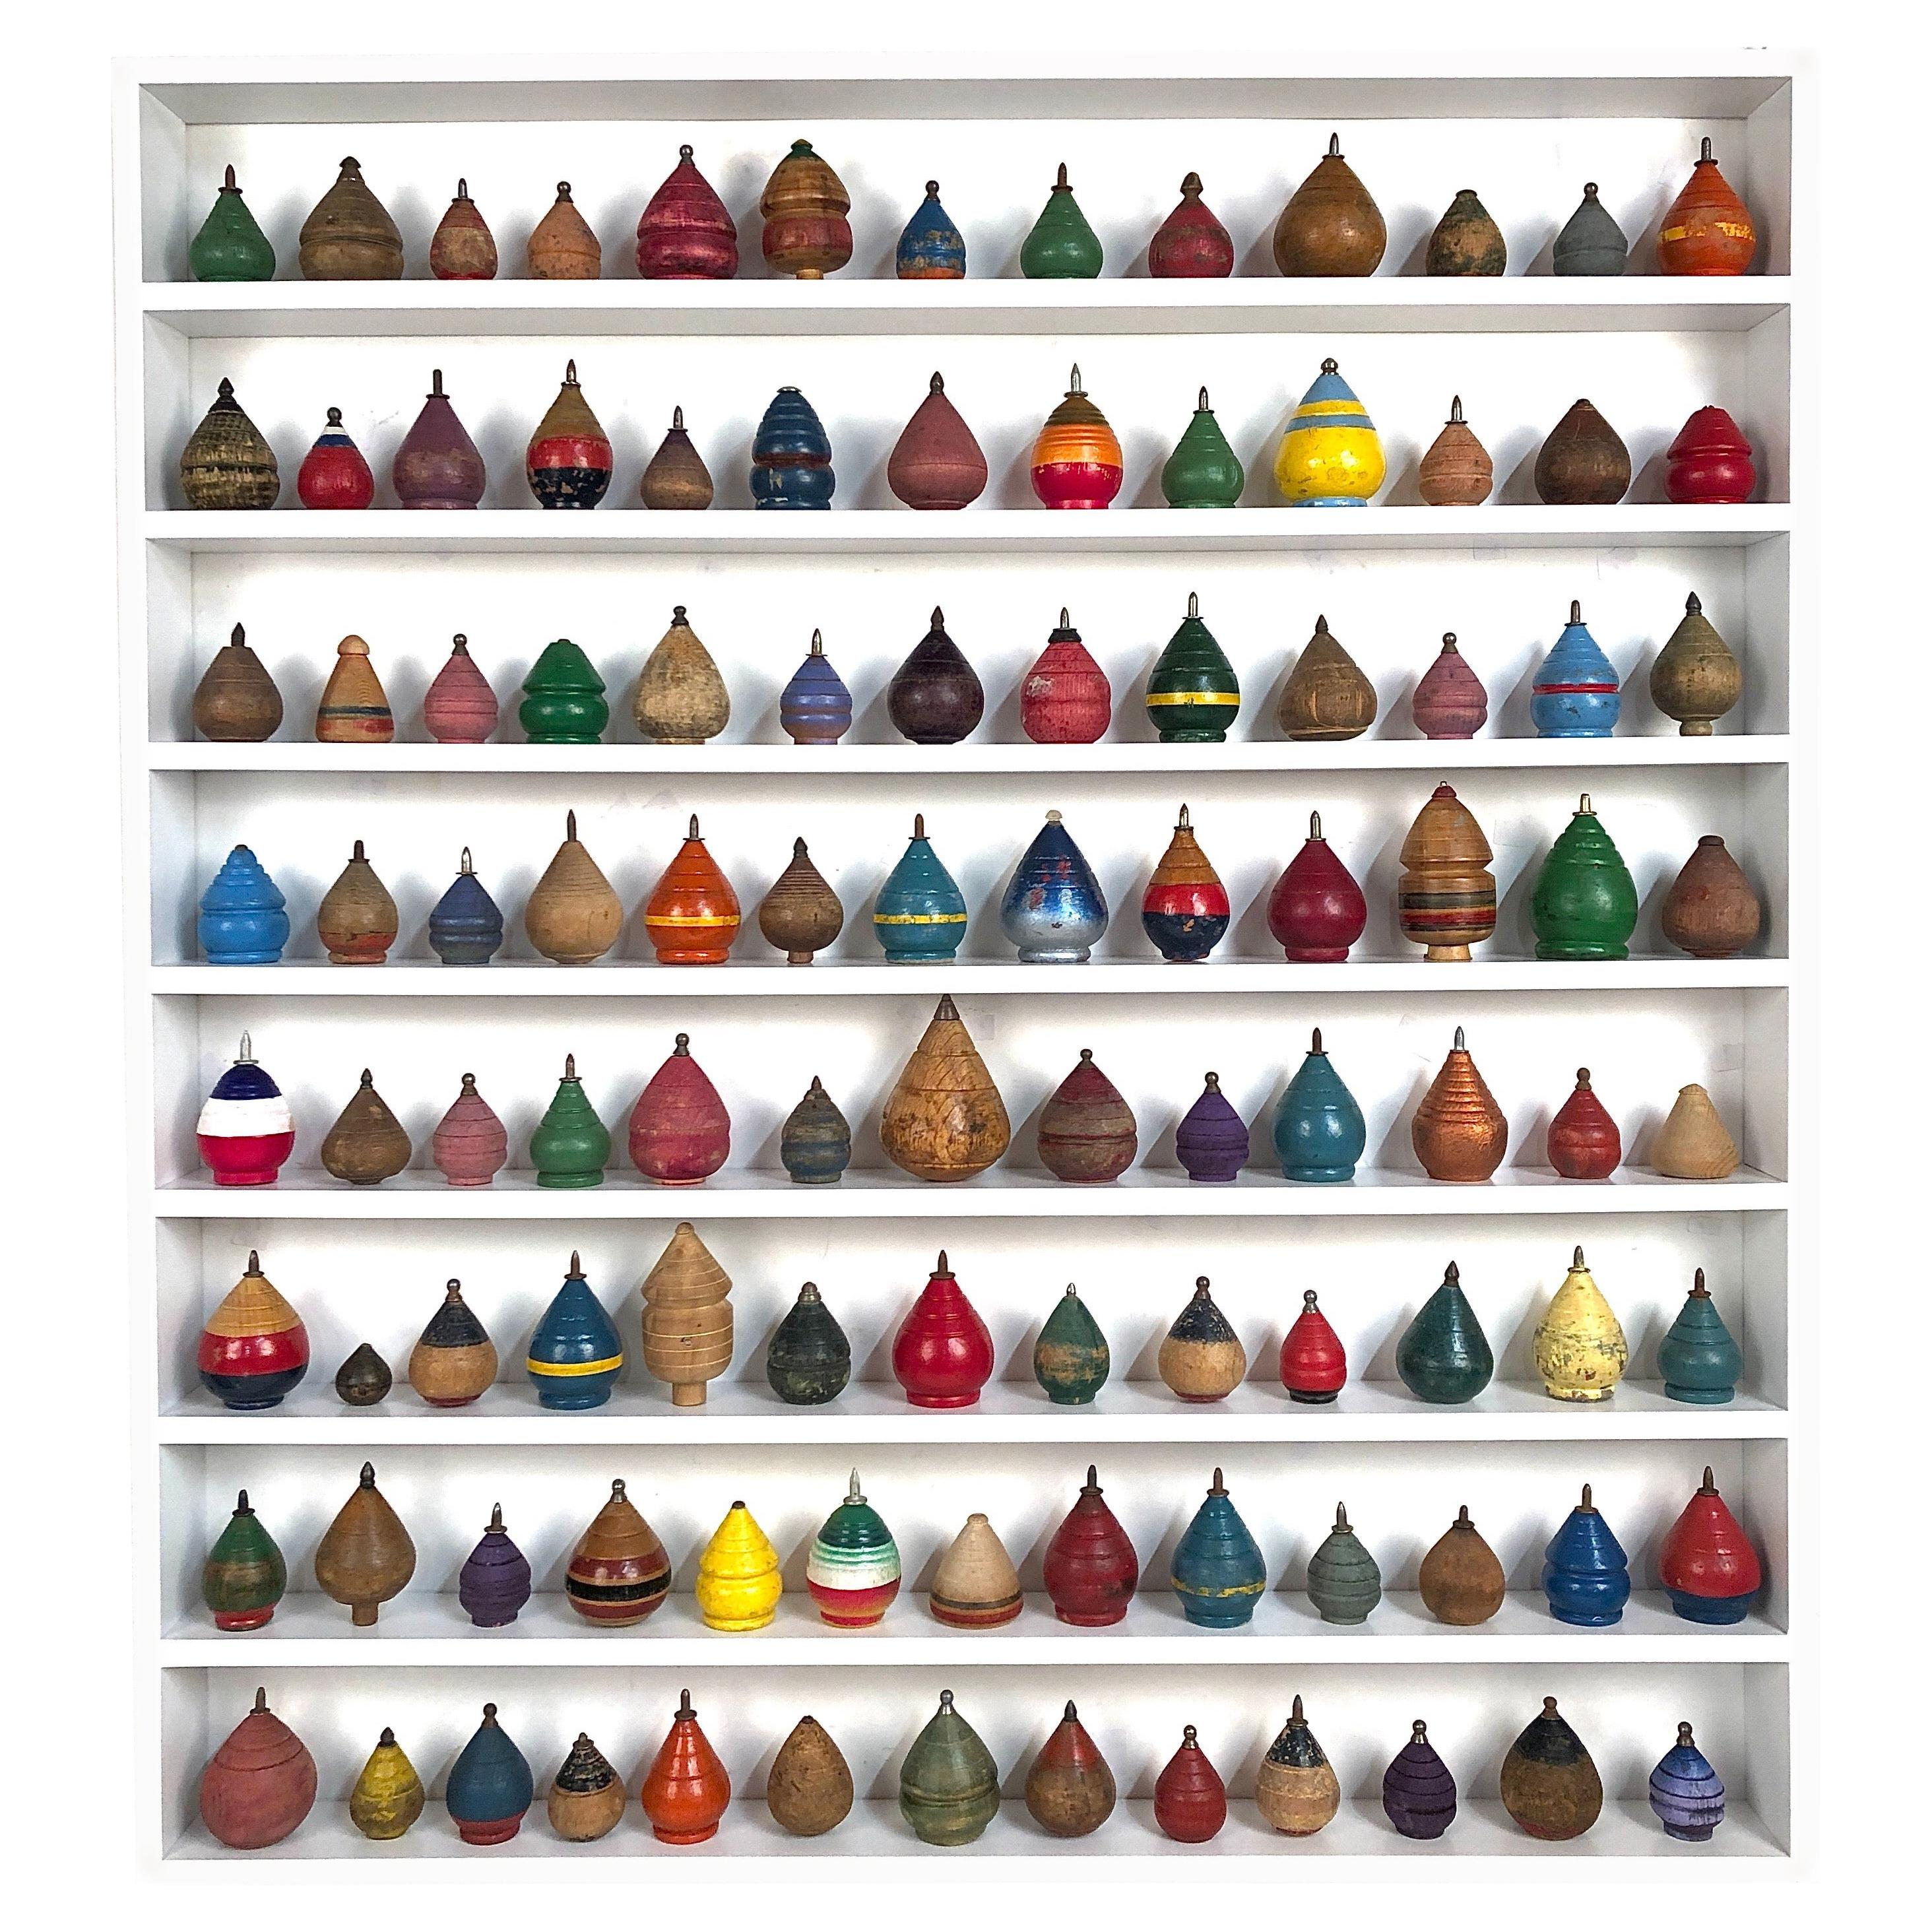 Colorful Antique Wooden Toy Spinning Top in Custom Display 104 Pieces